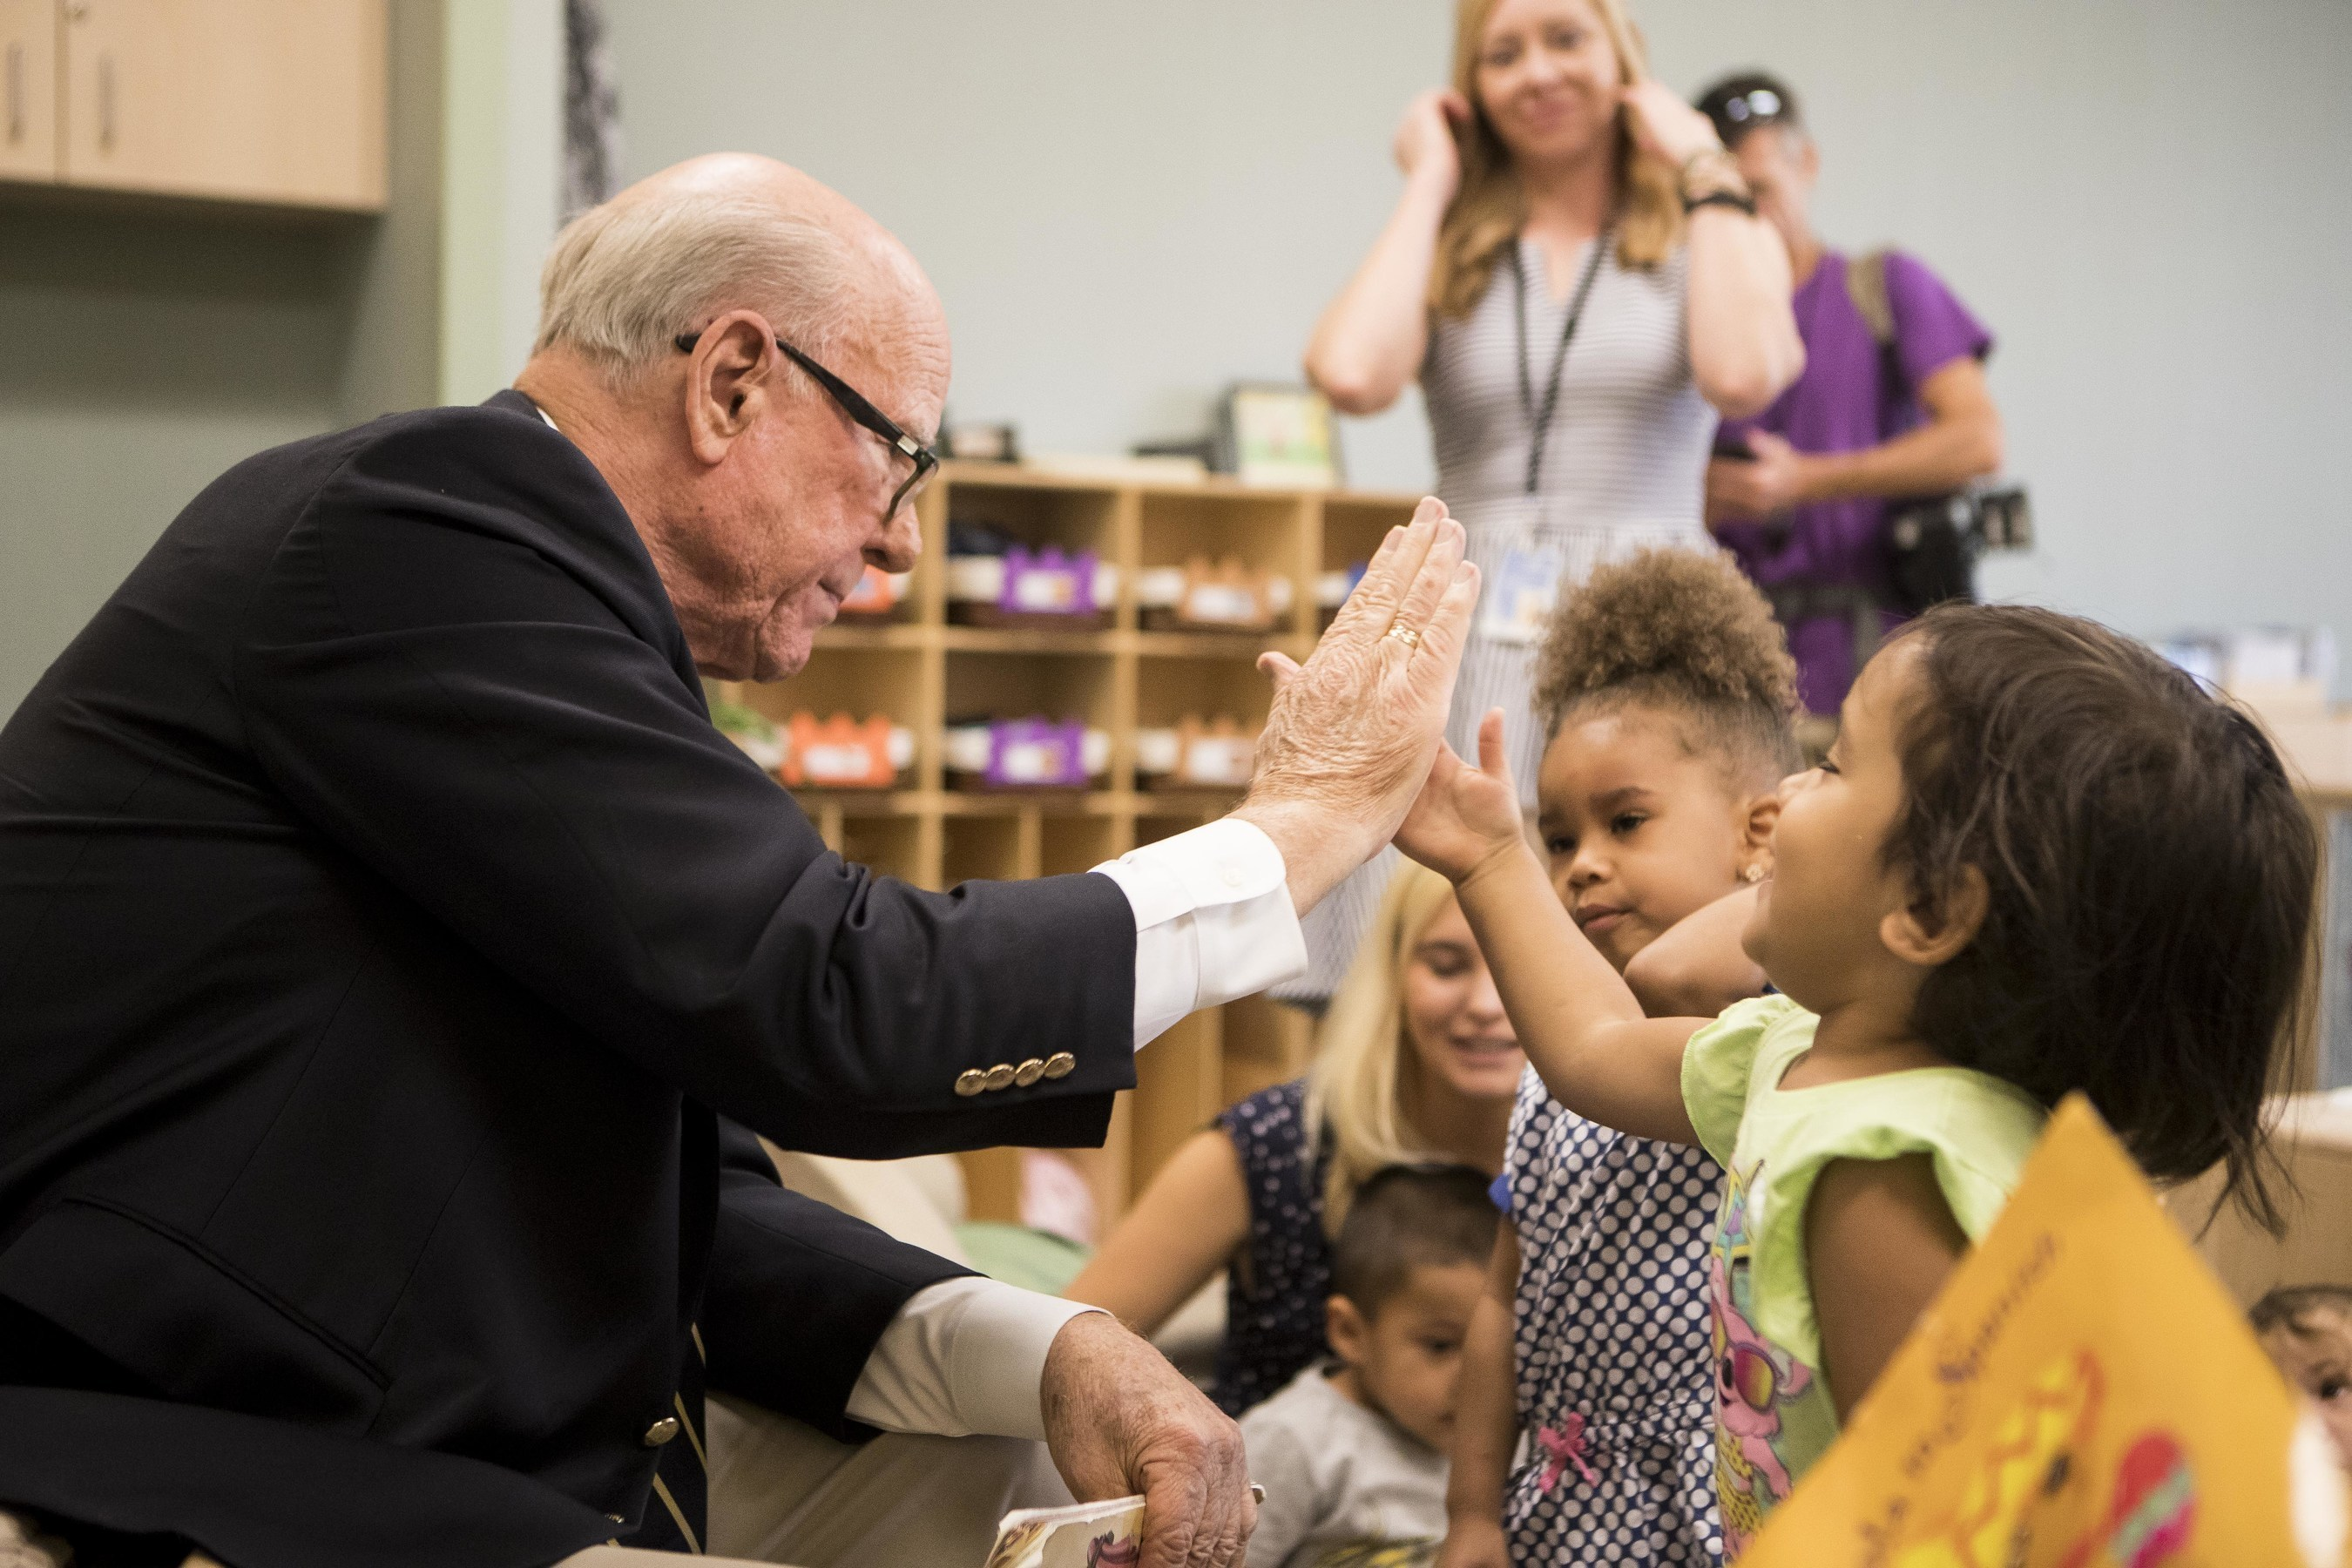 Sen. Pat Roberts (R-KS) reads to preschoolers at Children's Campus of Kansas City (CCKC), where nonprofits offer a continuum of education, family and health services focused on kids from birth to age five. Sen. Roberts met with CCKC staff to learn why facilities tailored to young learners are so important to their future, and why programs like the federal New Markets Tax Credit are so critical to building them.